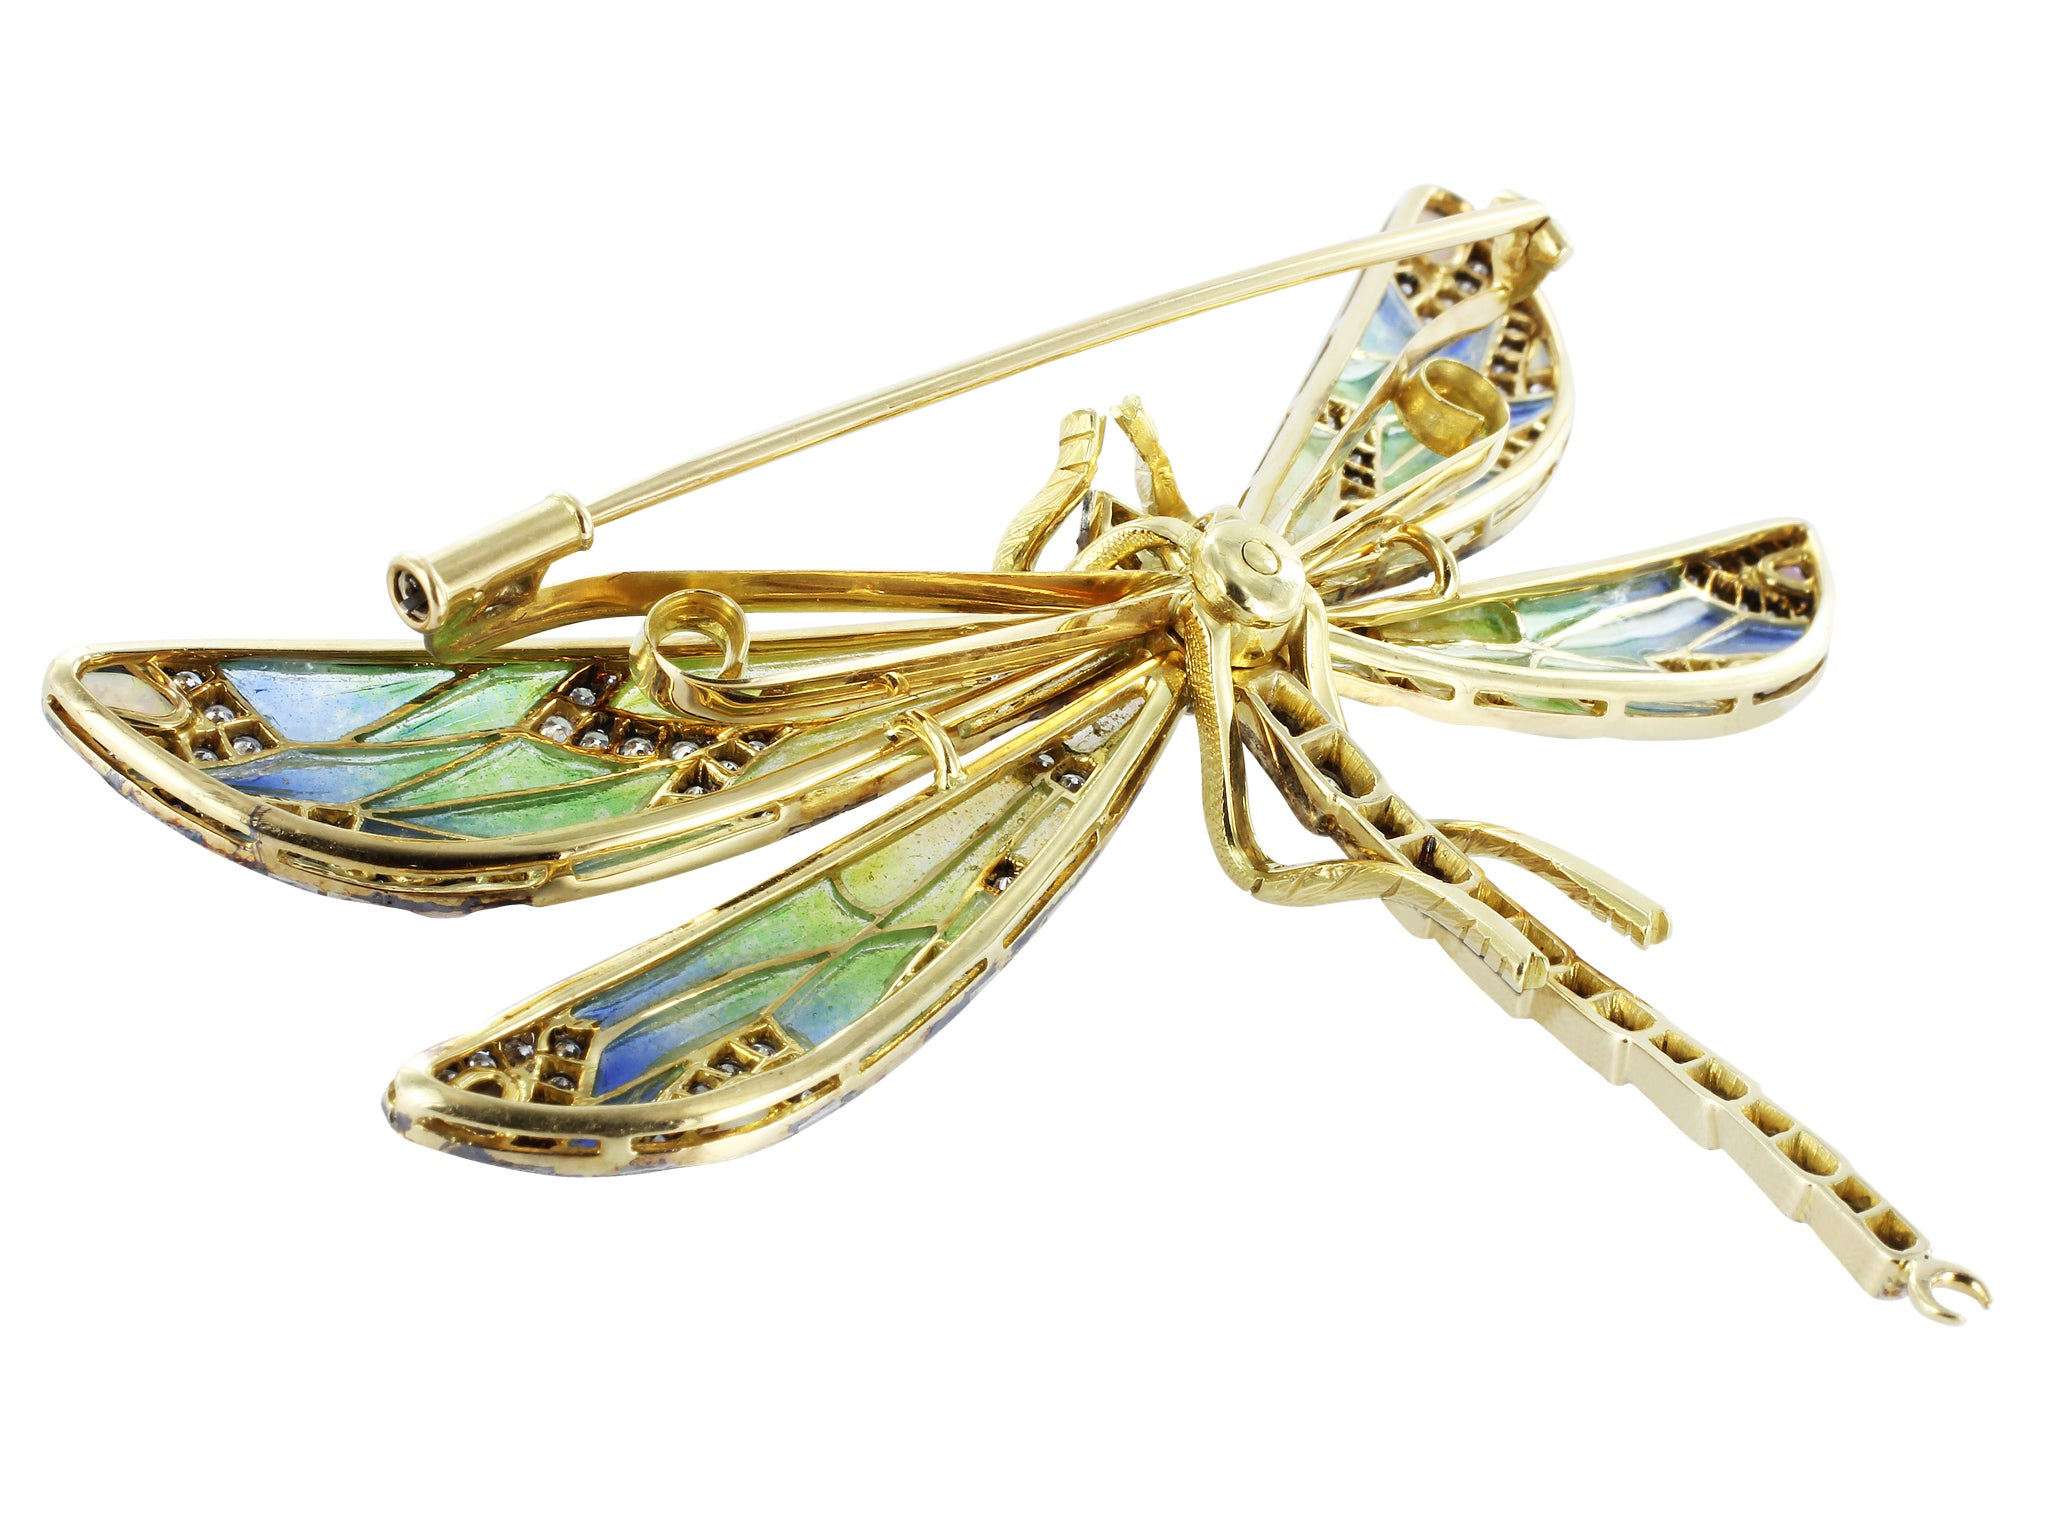 Plique-a-Jour Dragonfly Pin at 1stdibs